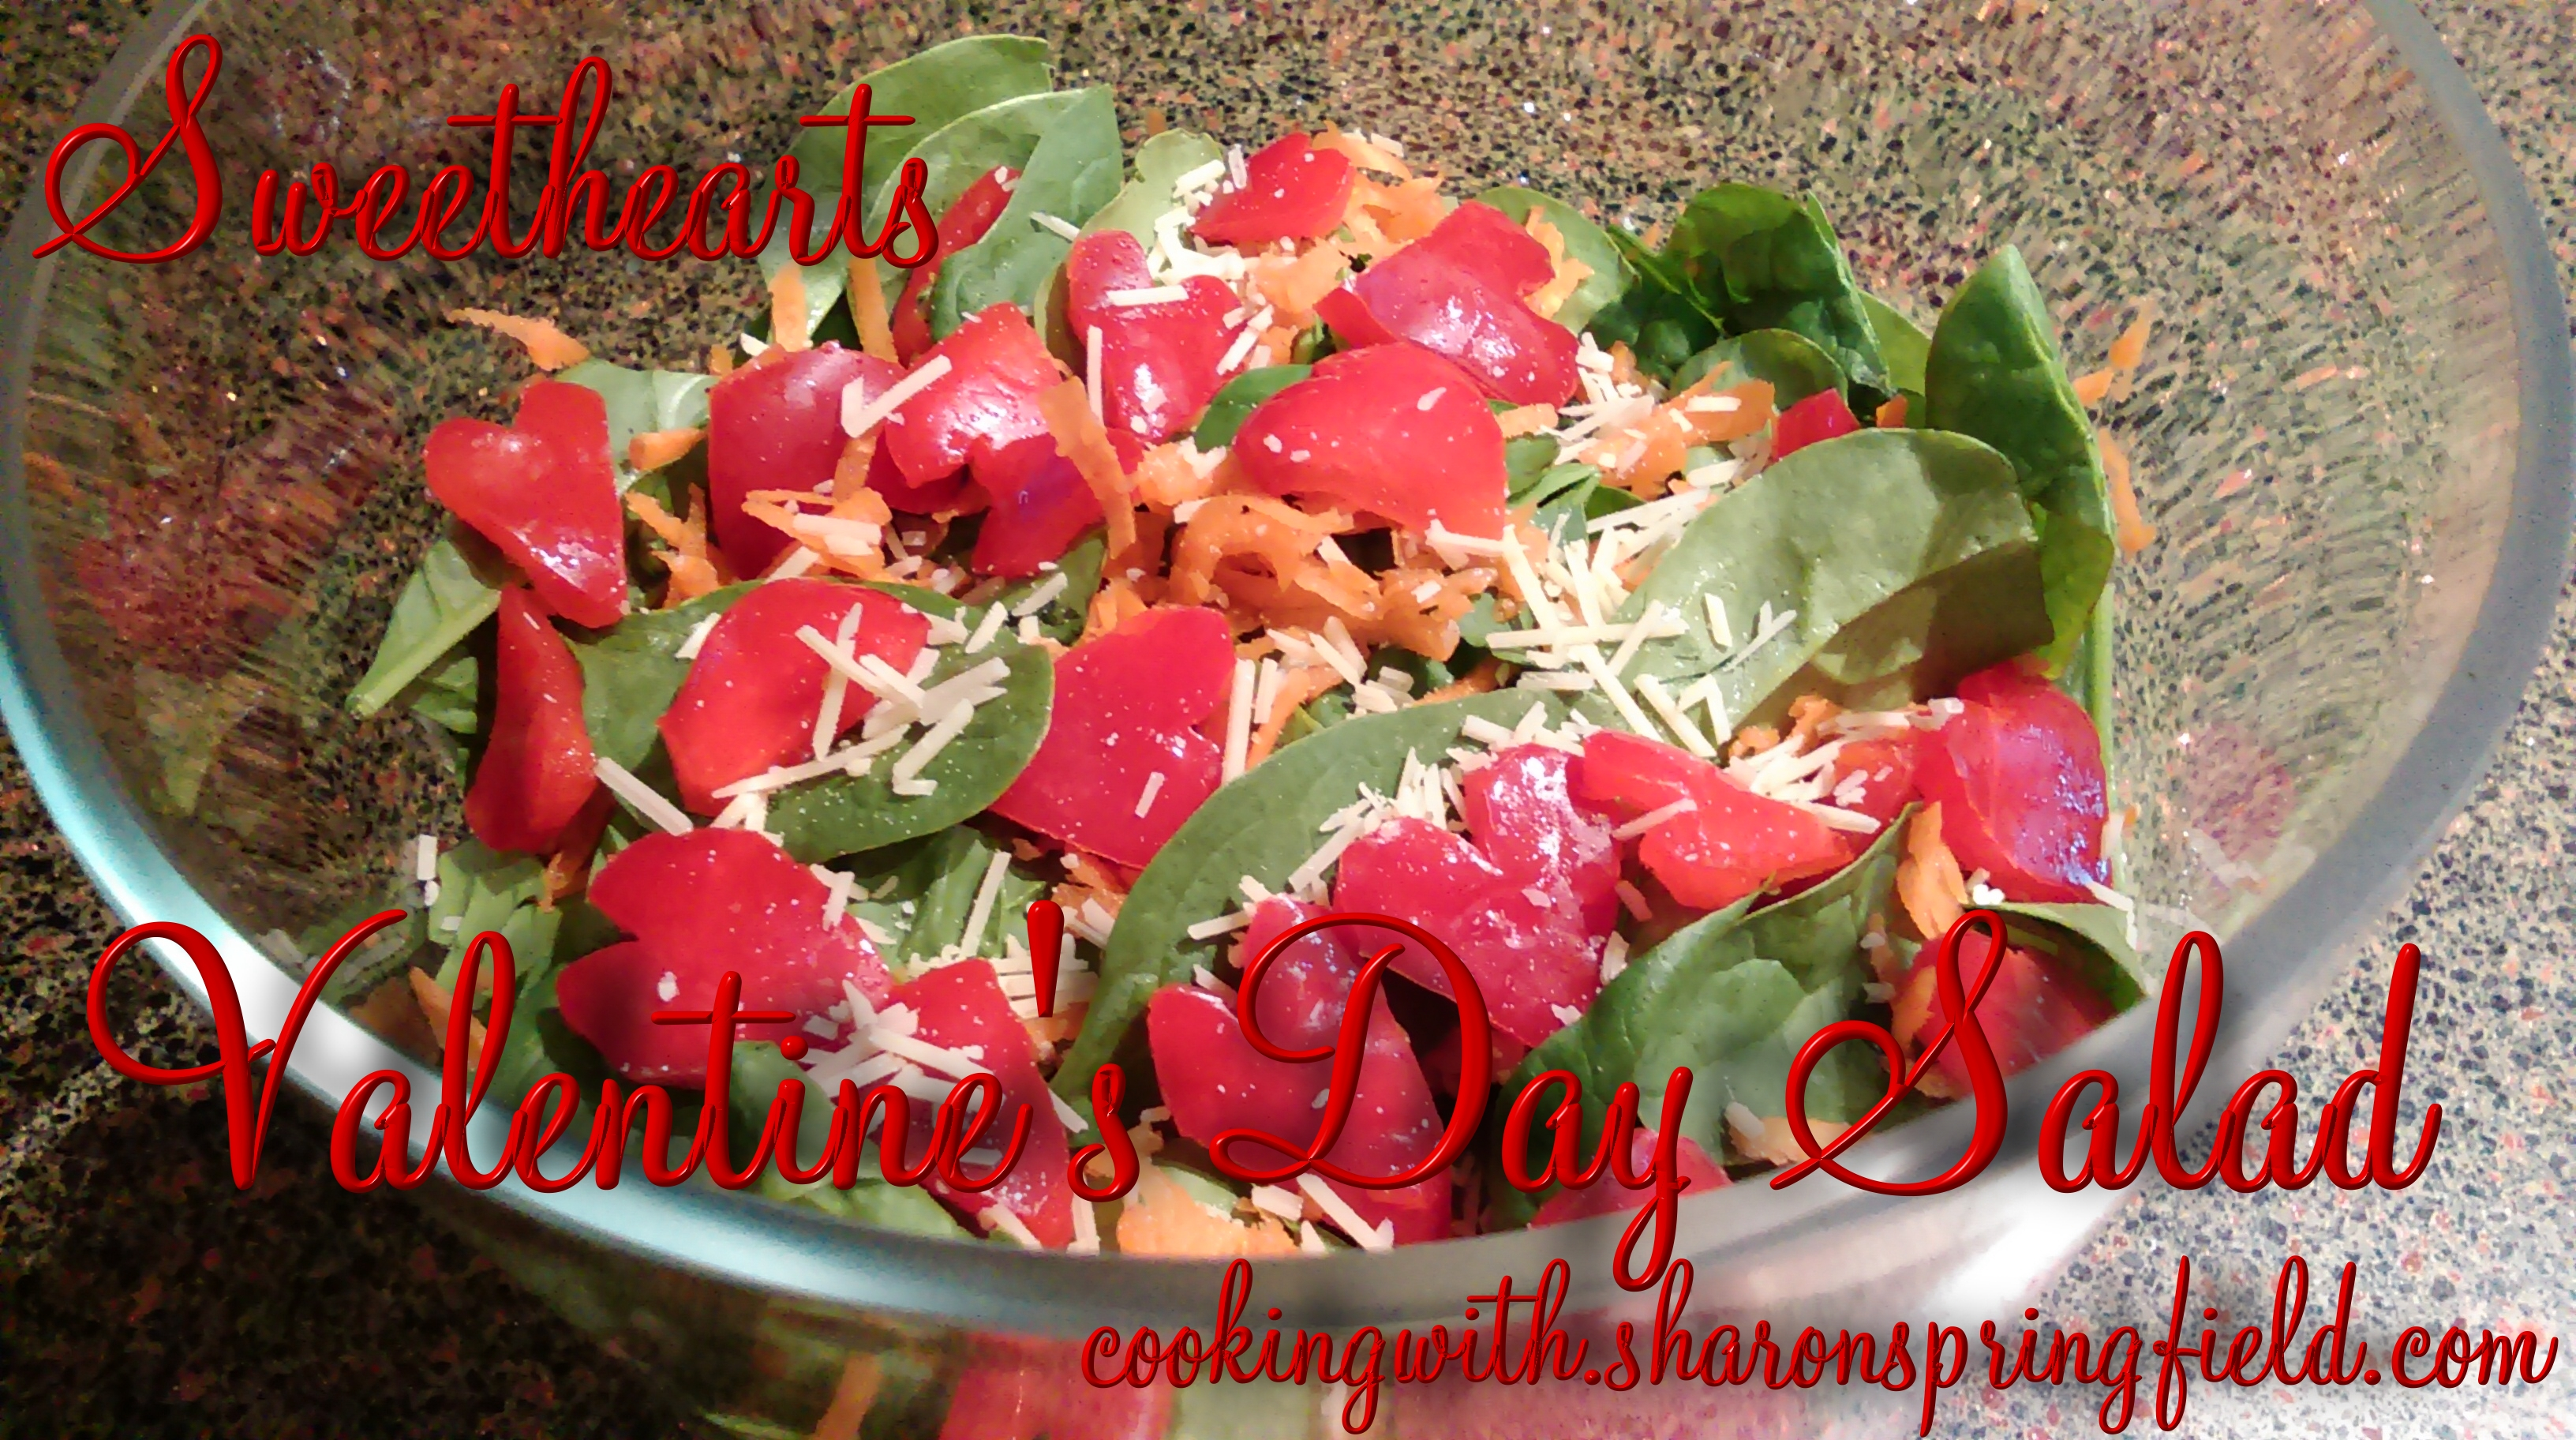 Sweethearts Valentine's Day Salad